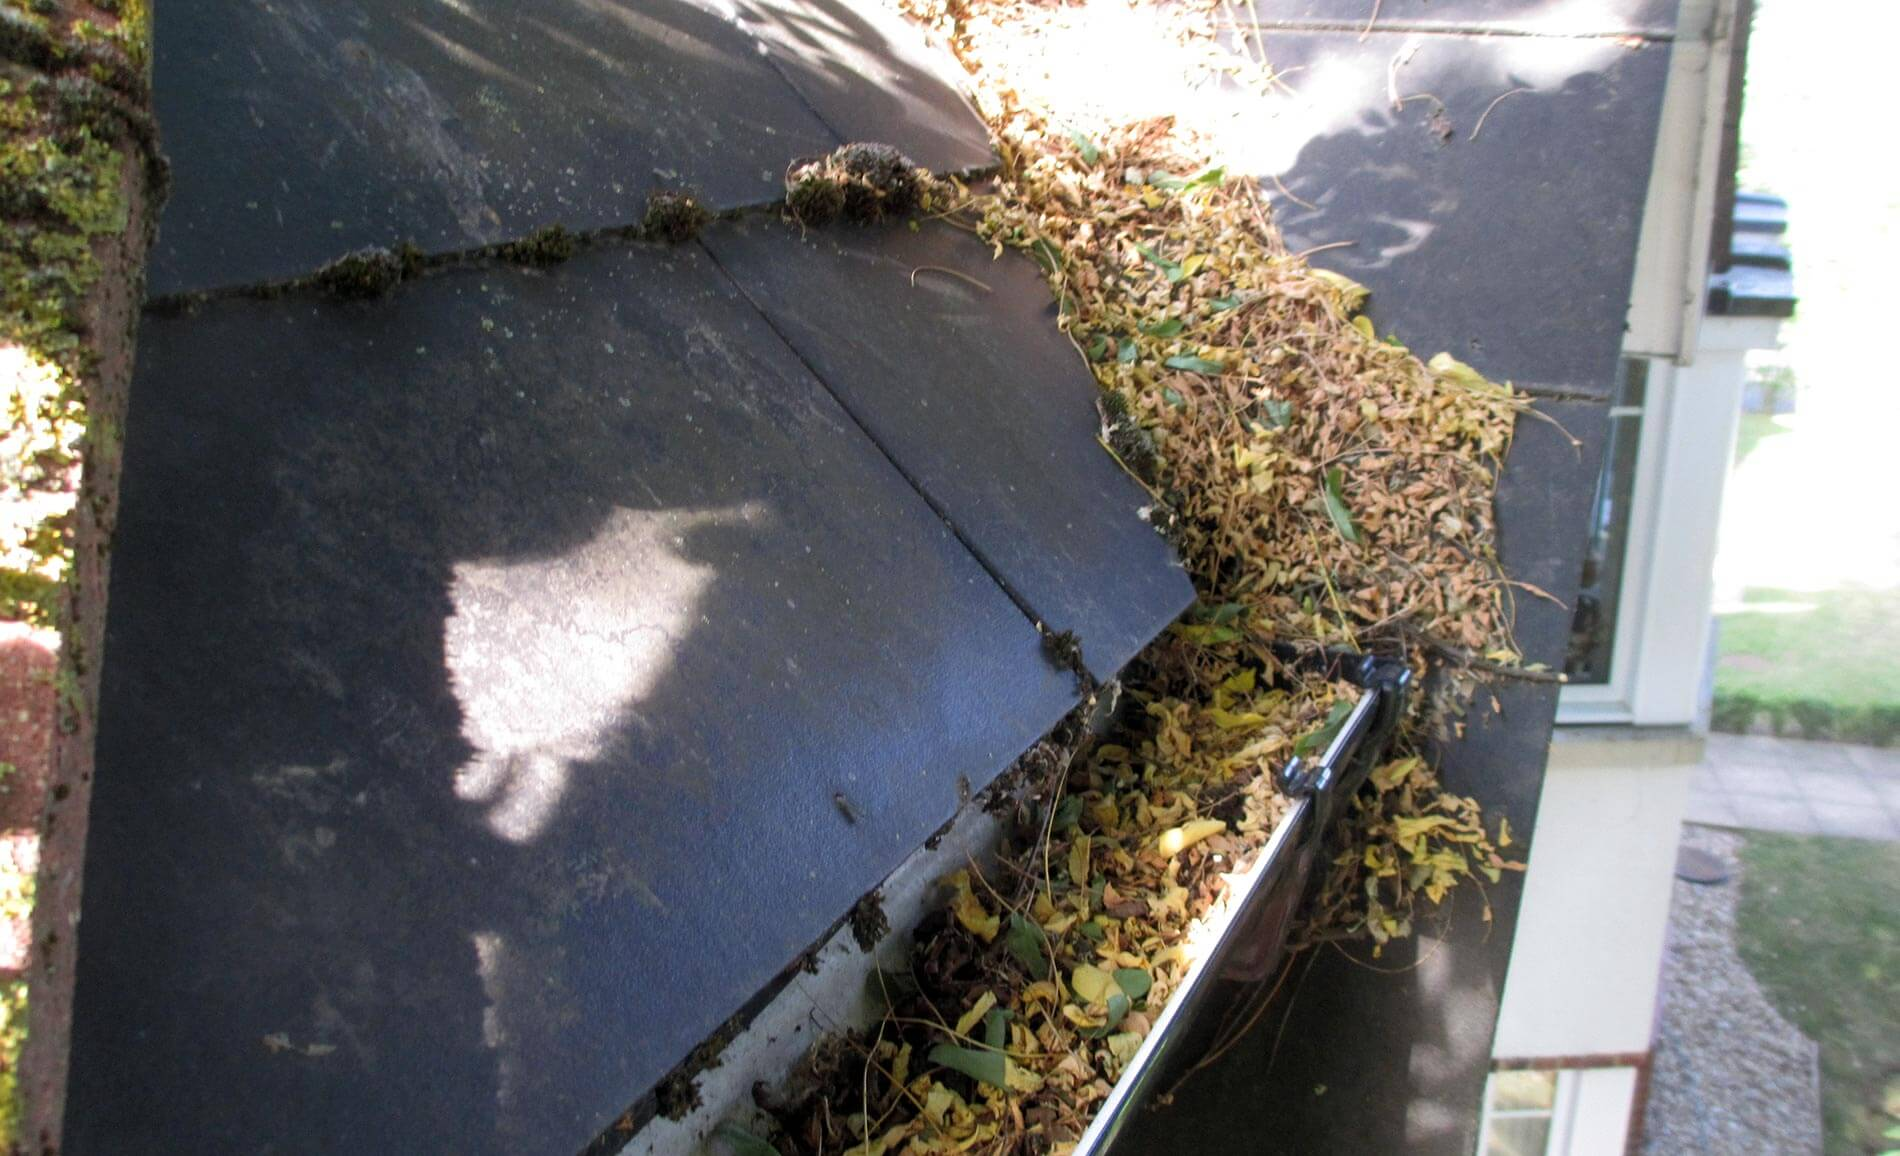 Gutter Clearing Services Farnham South East Uk Roofline Solutions